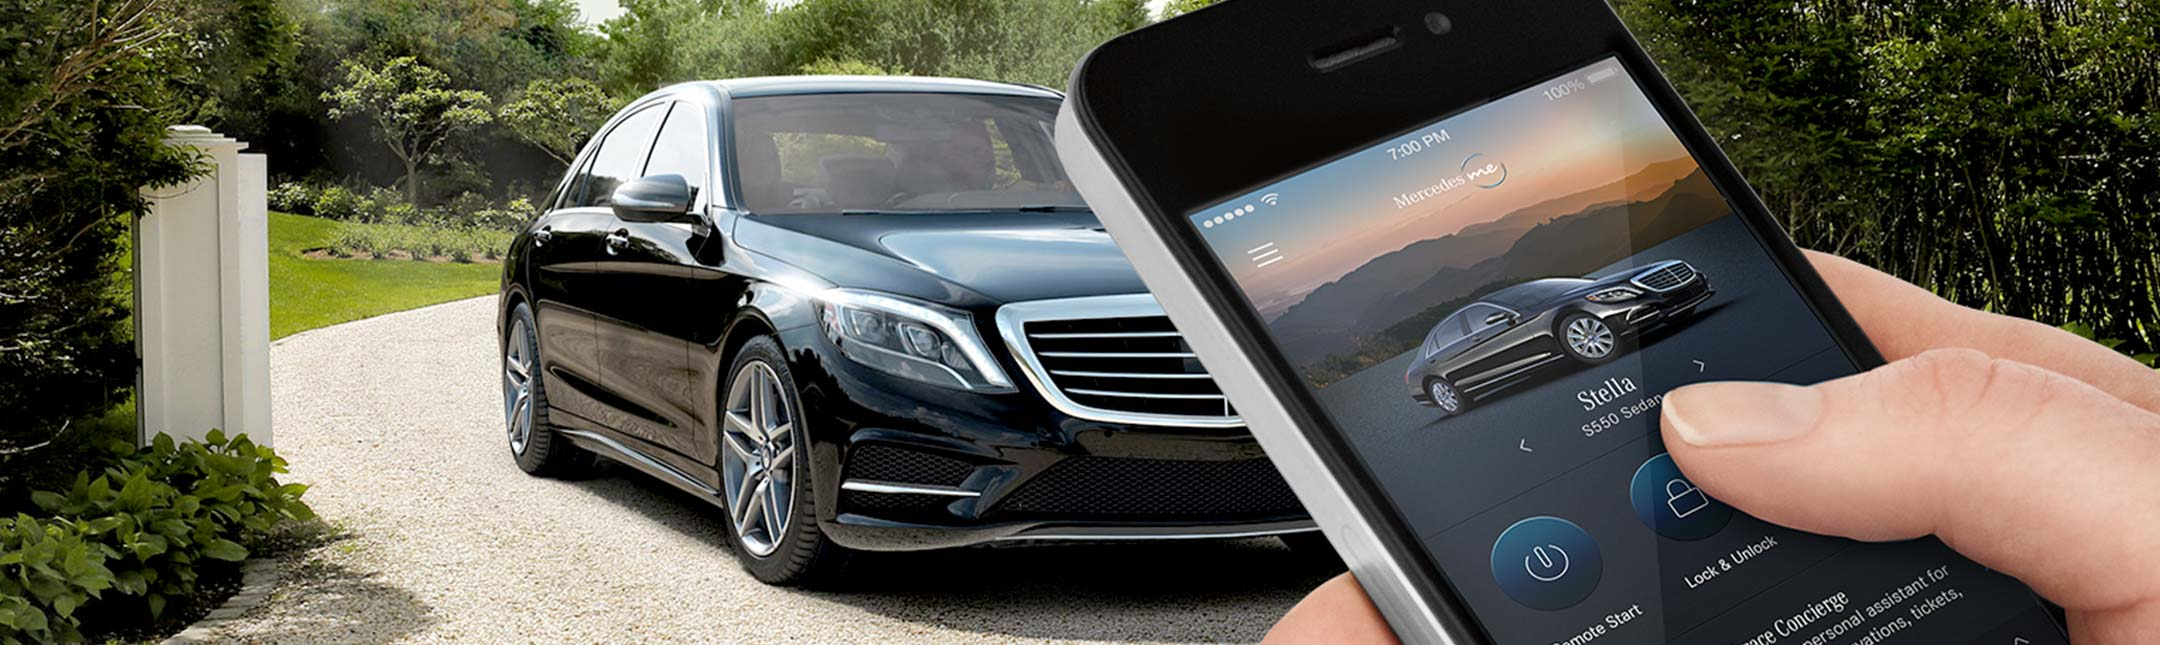 mercedes benz of escondido mercedes benz roadside service provides. Cars Review. Best American Auto & Cars Review